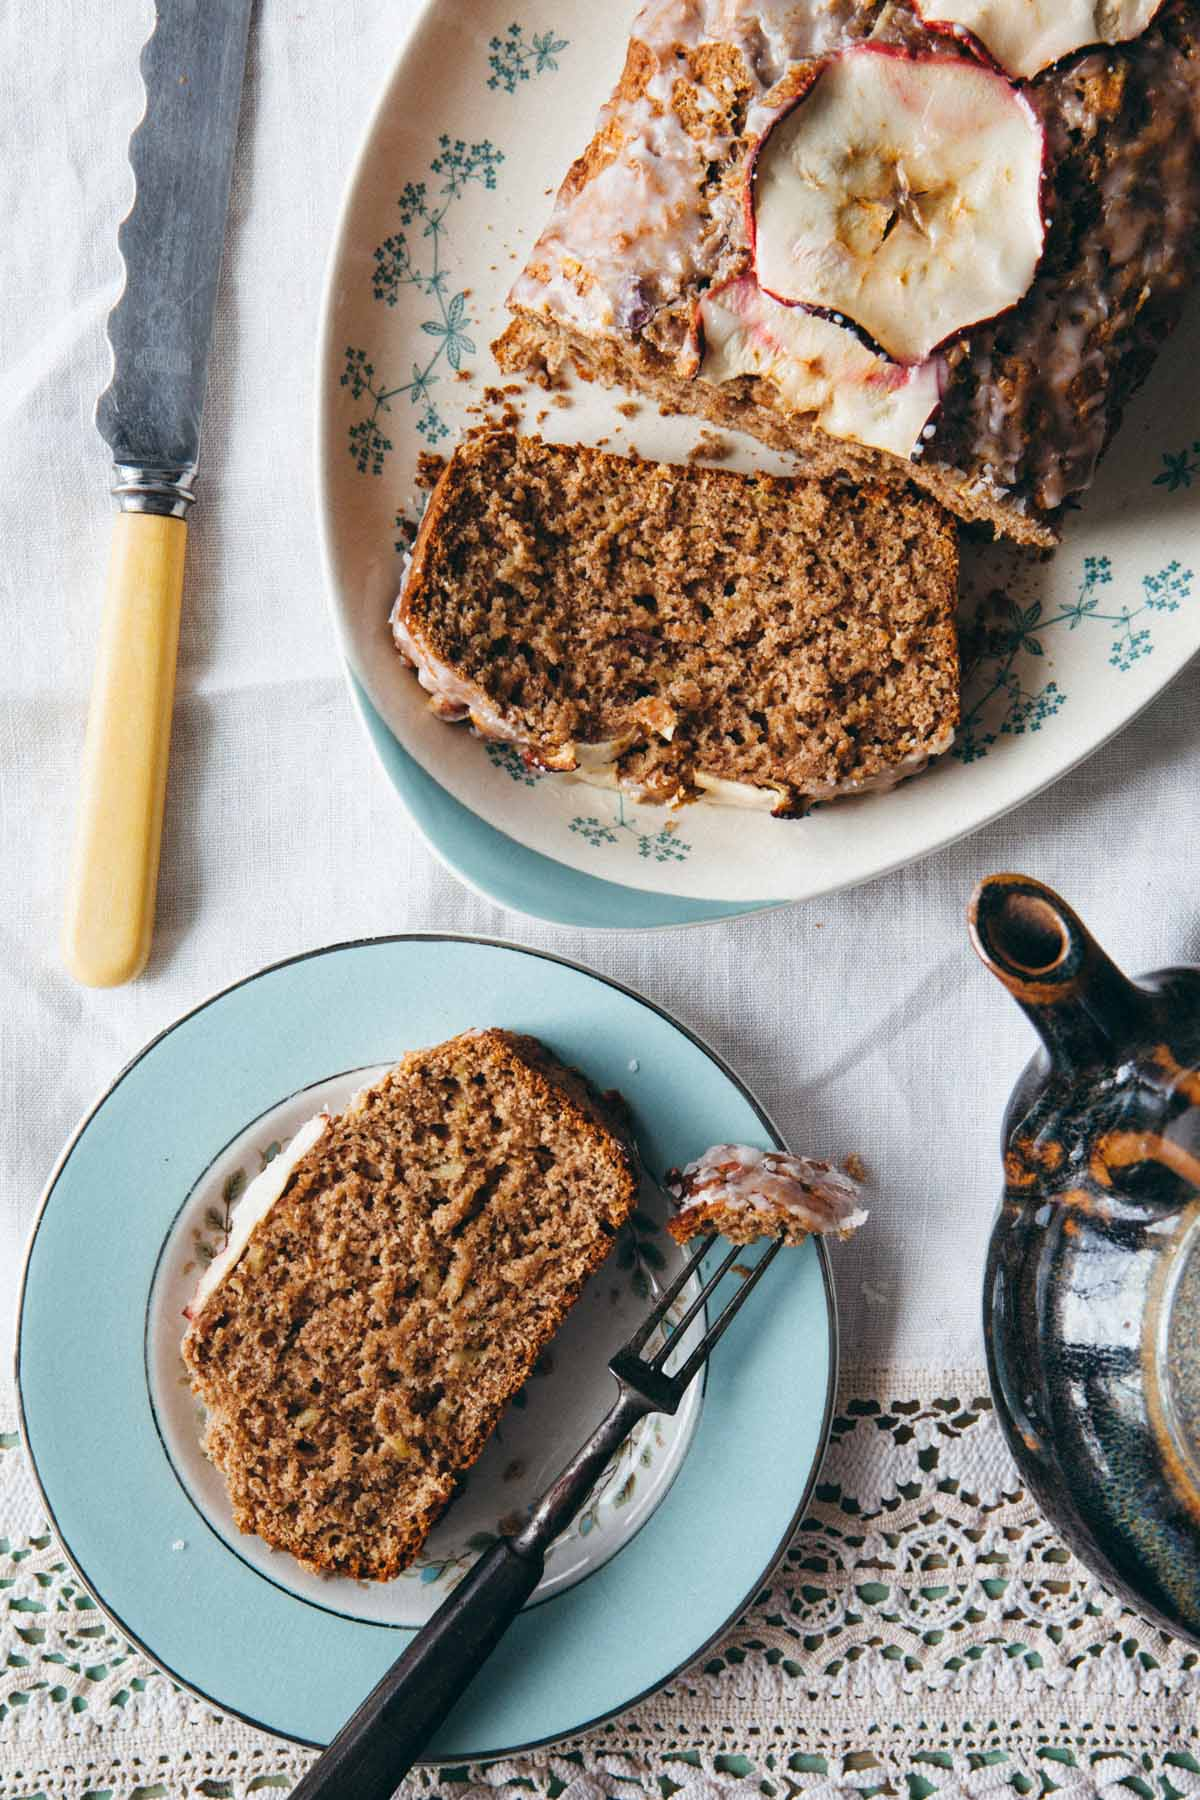 An apple loaf on a platter with a slice on a plate with a fork.